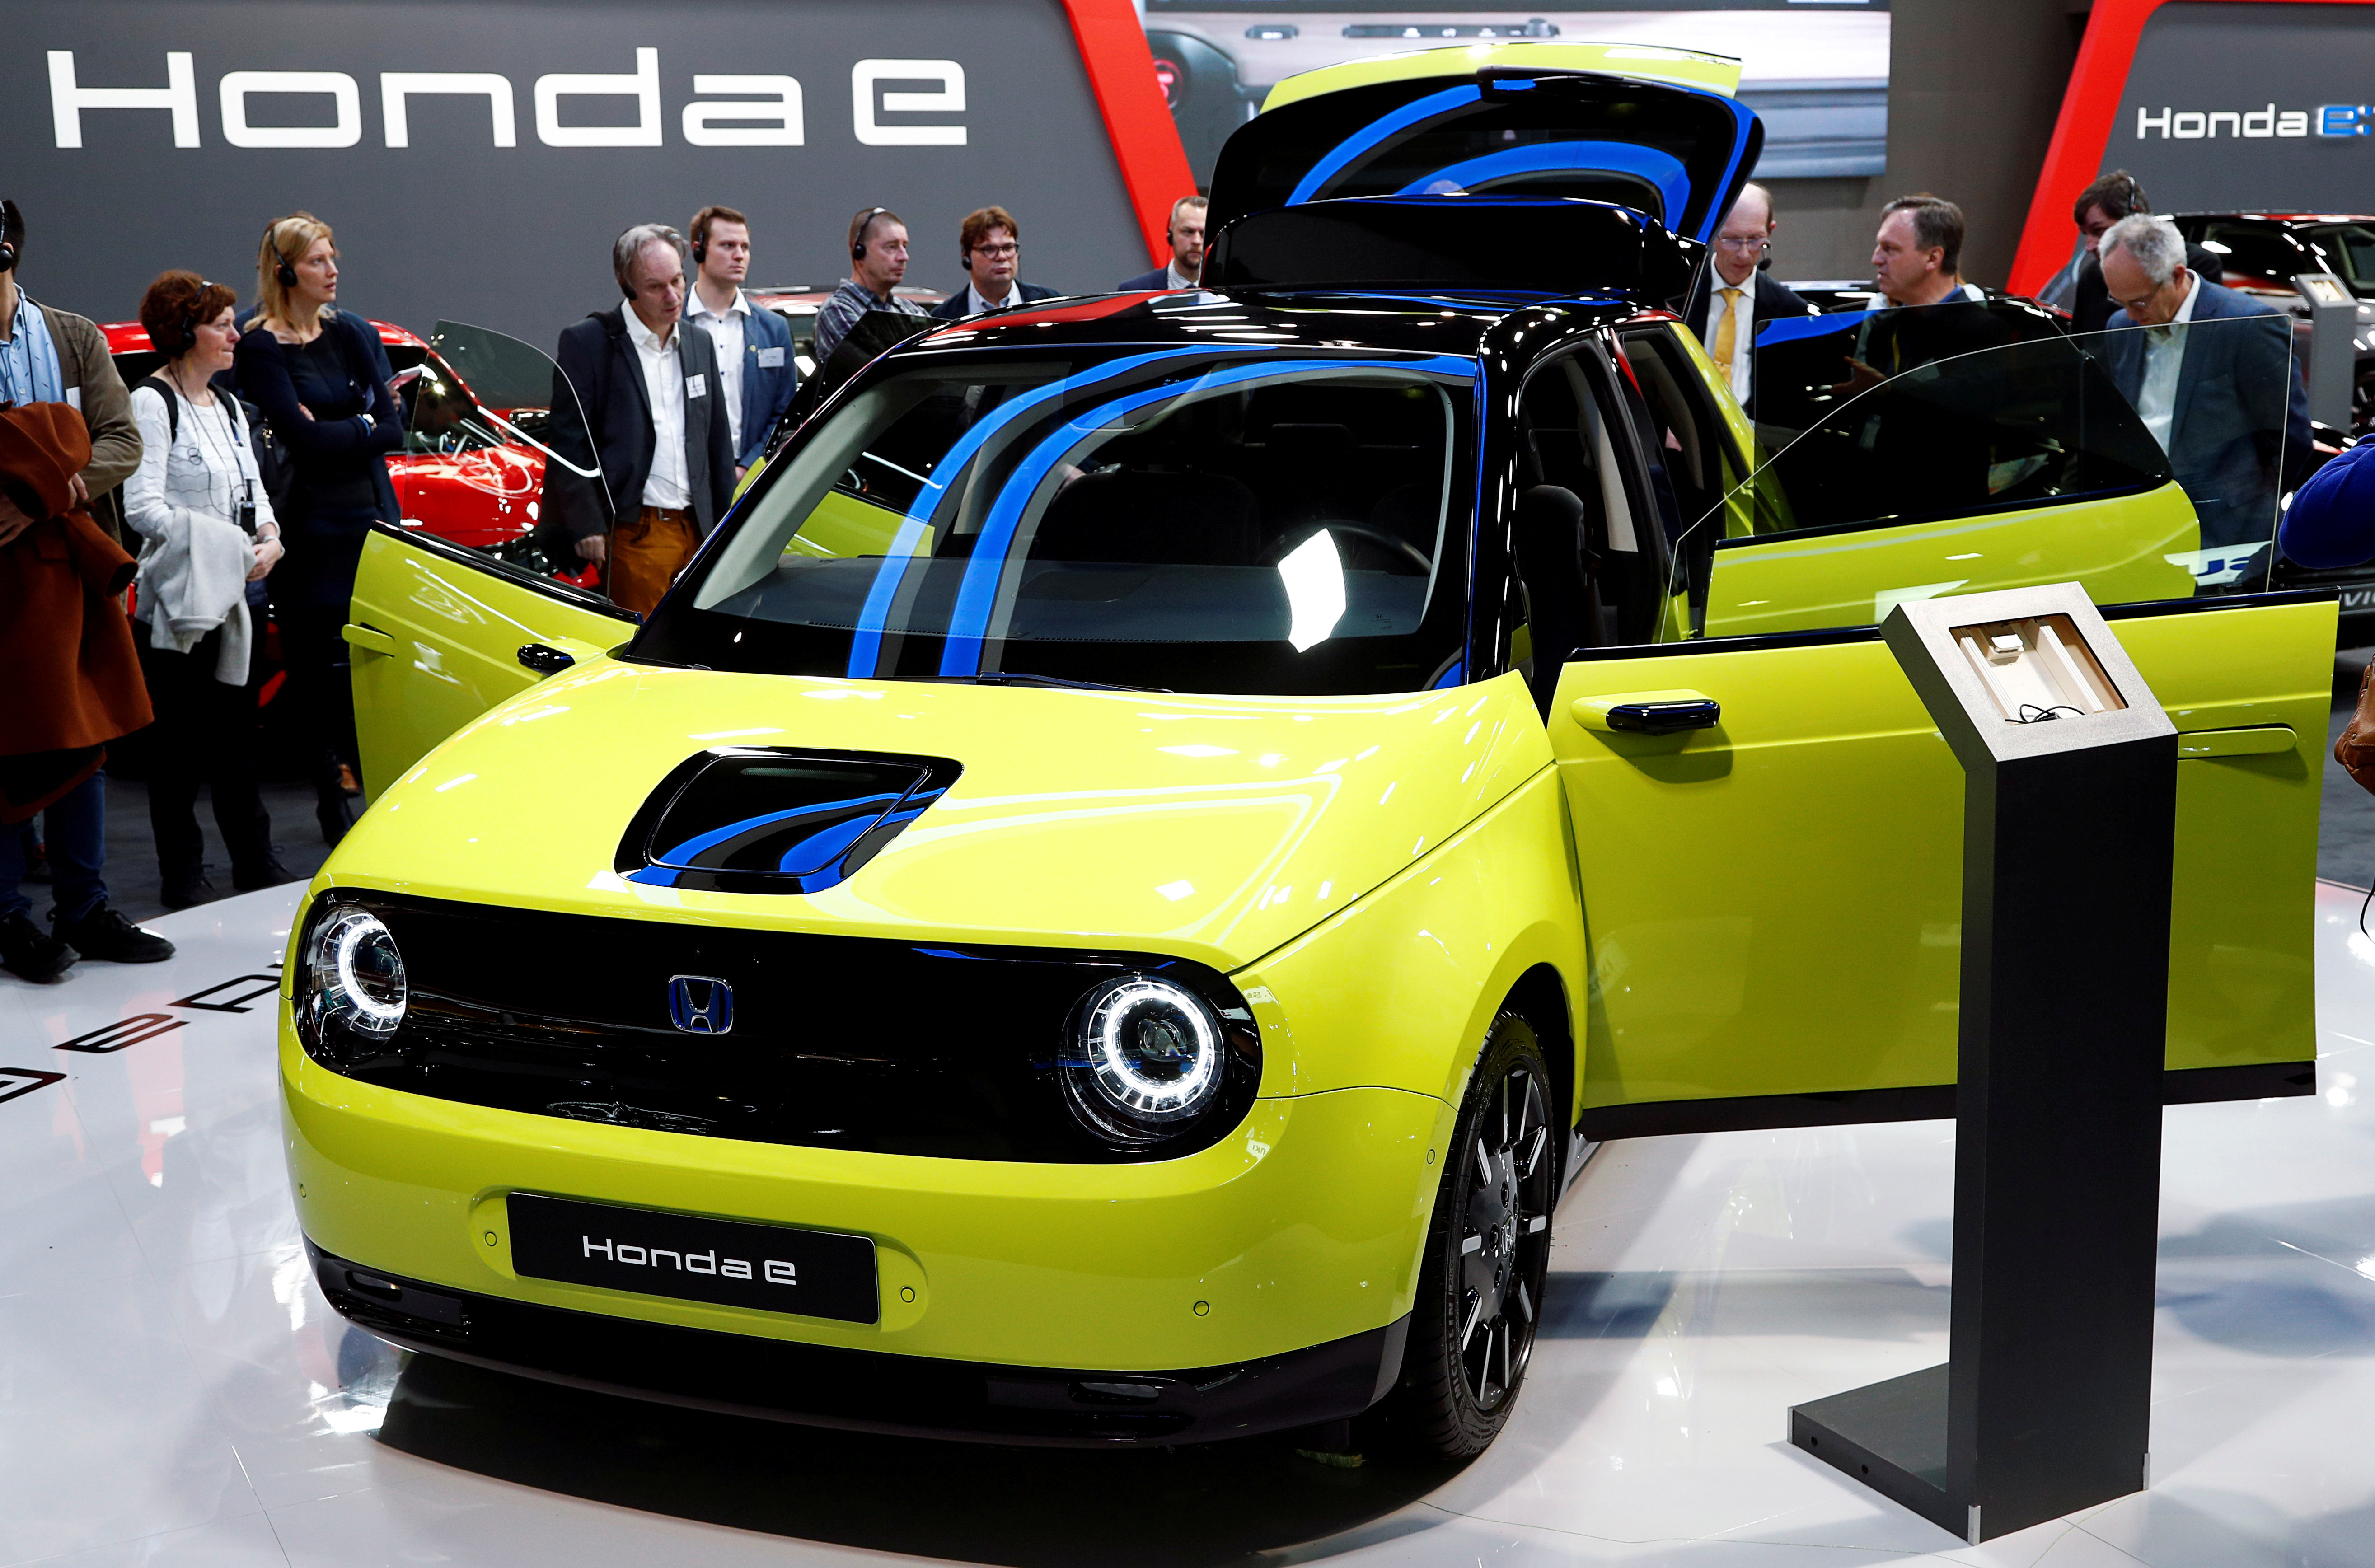 Honda's drive to be an all-electric car-maker by 2040